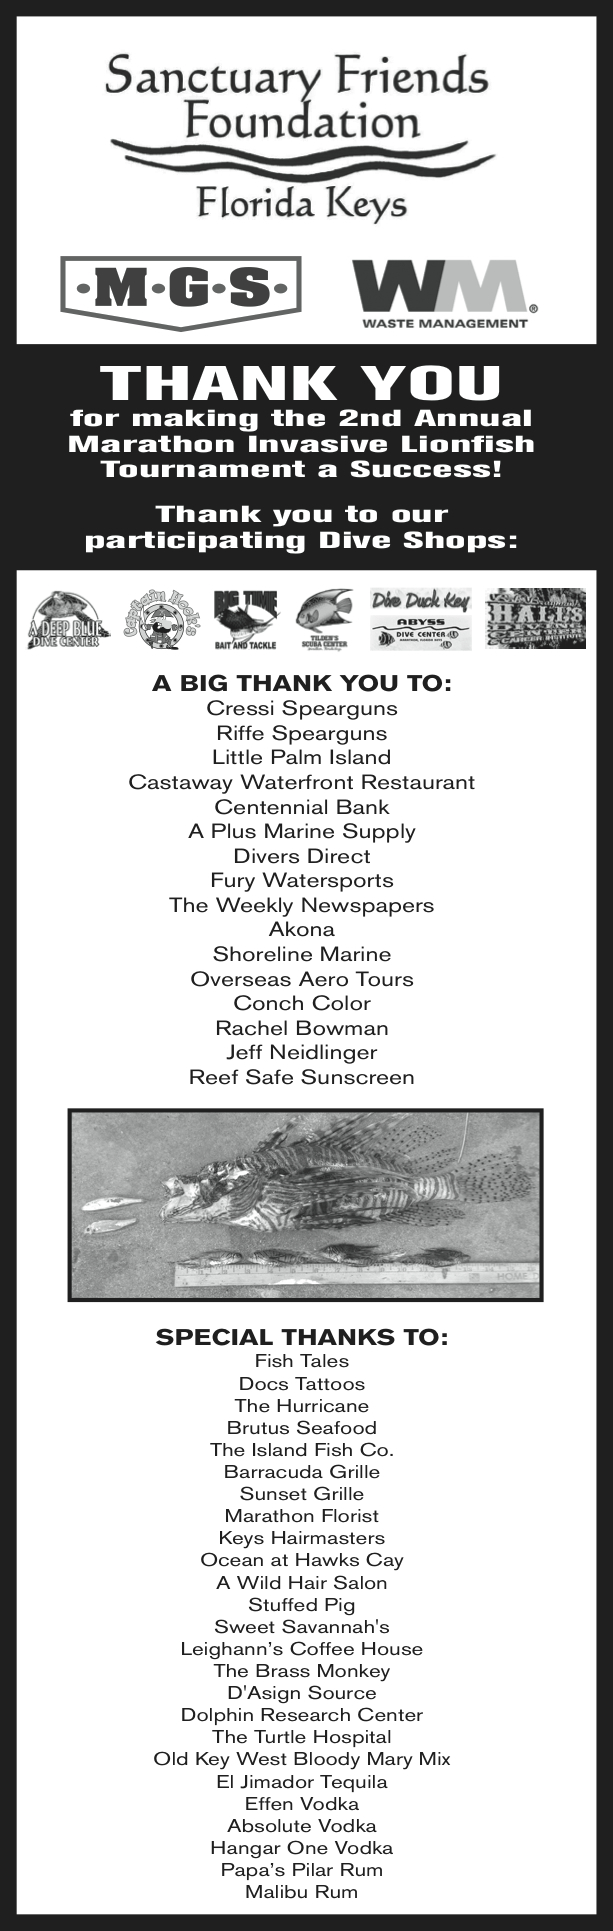 Thank you for making the Second Annual Marathon Invasive Lionfish Tournament a success!